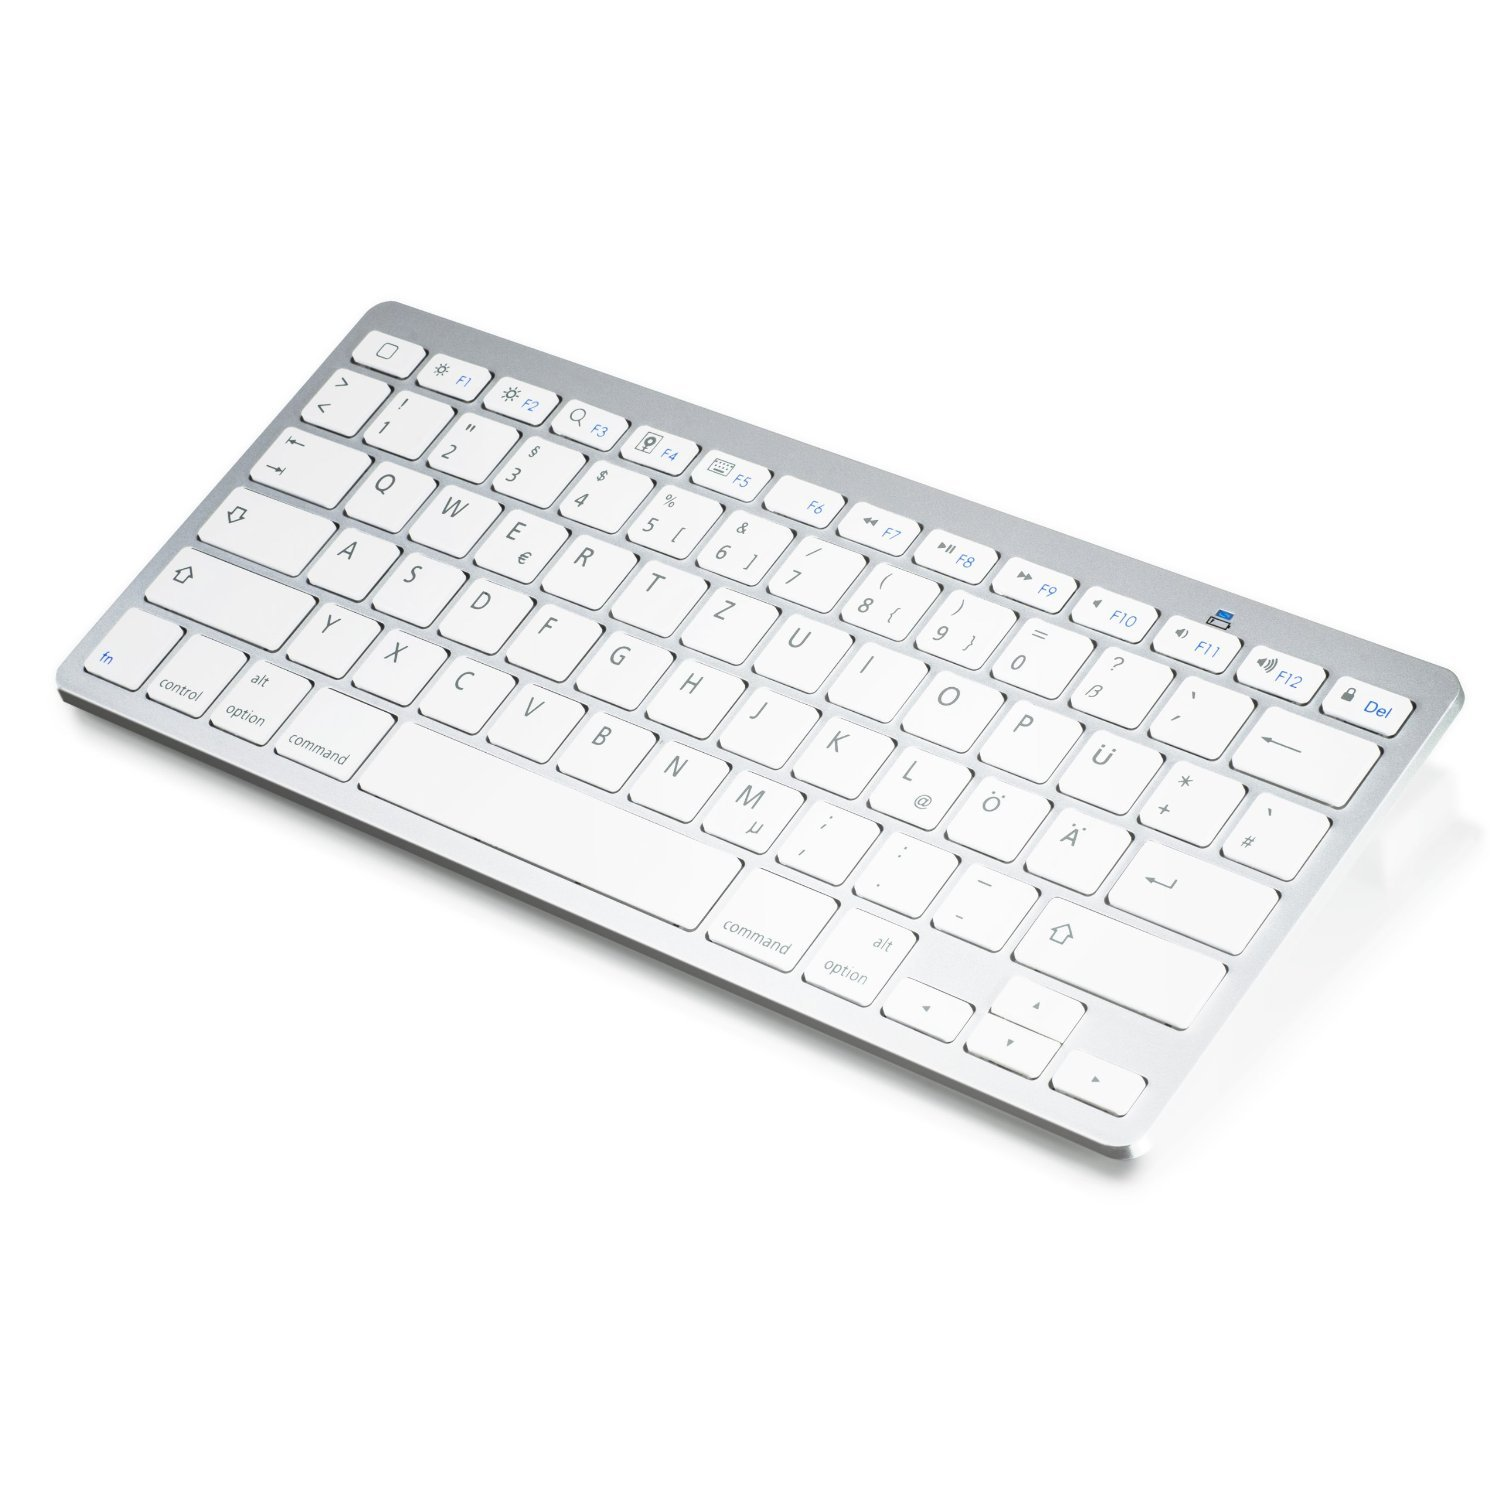 Wireless Bluetooth Tastatur Keyboard im Slim Design Amazon puter & Zubehör